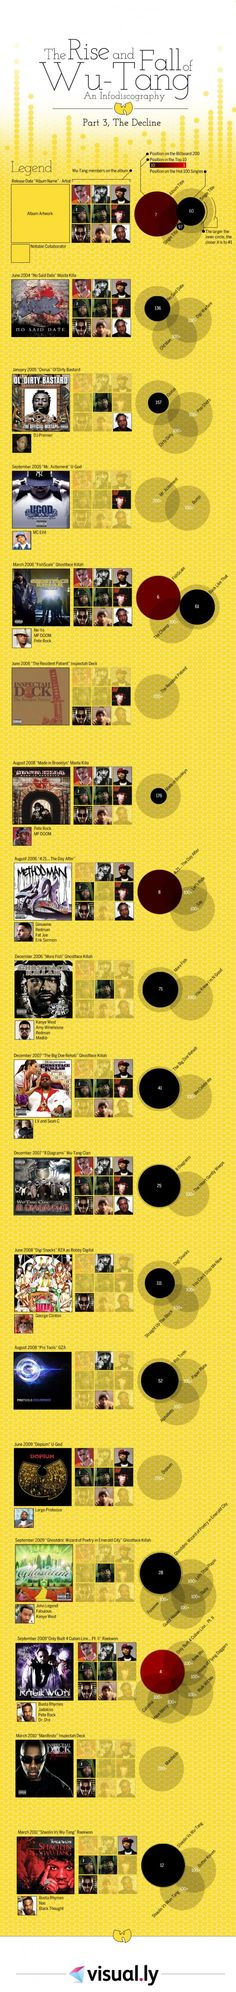 In the final installment of the Rise and Fall of Wu-Tang, we look at their track record from 2004 until present.